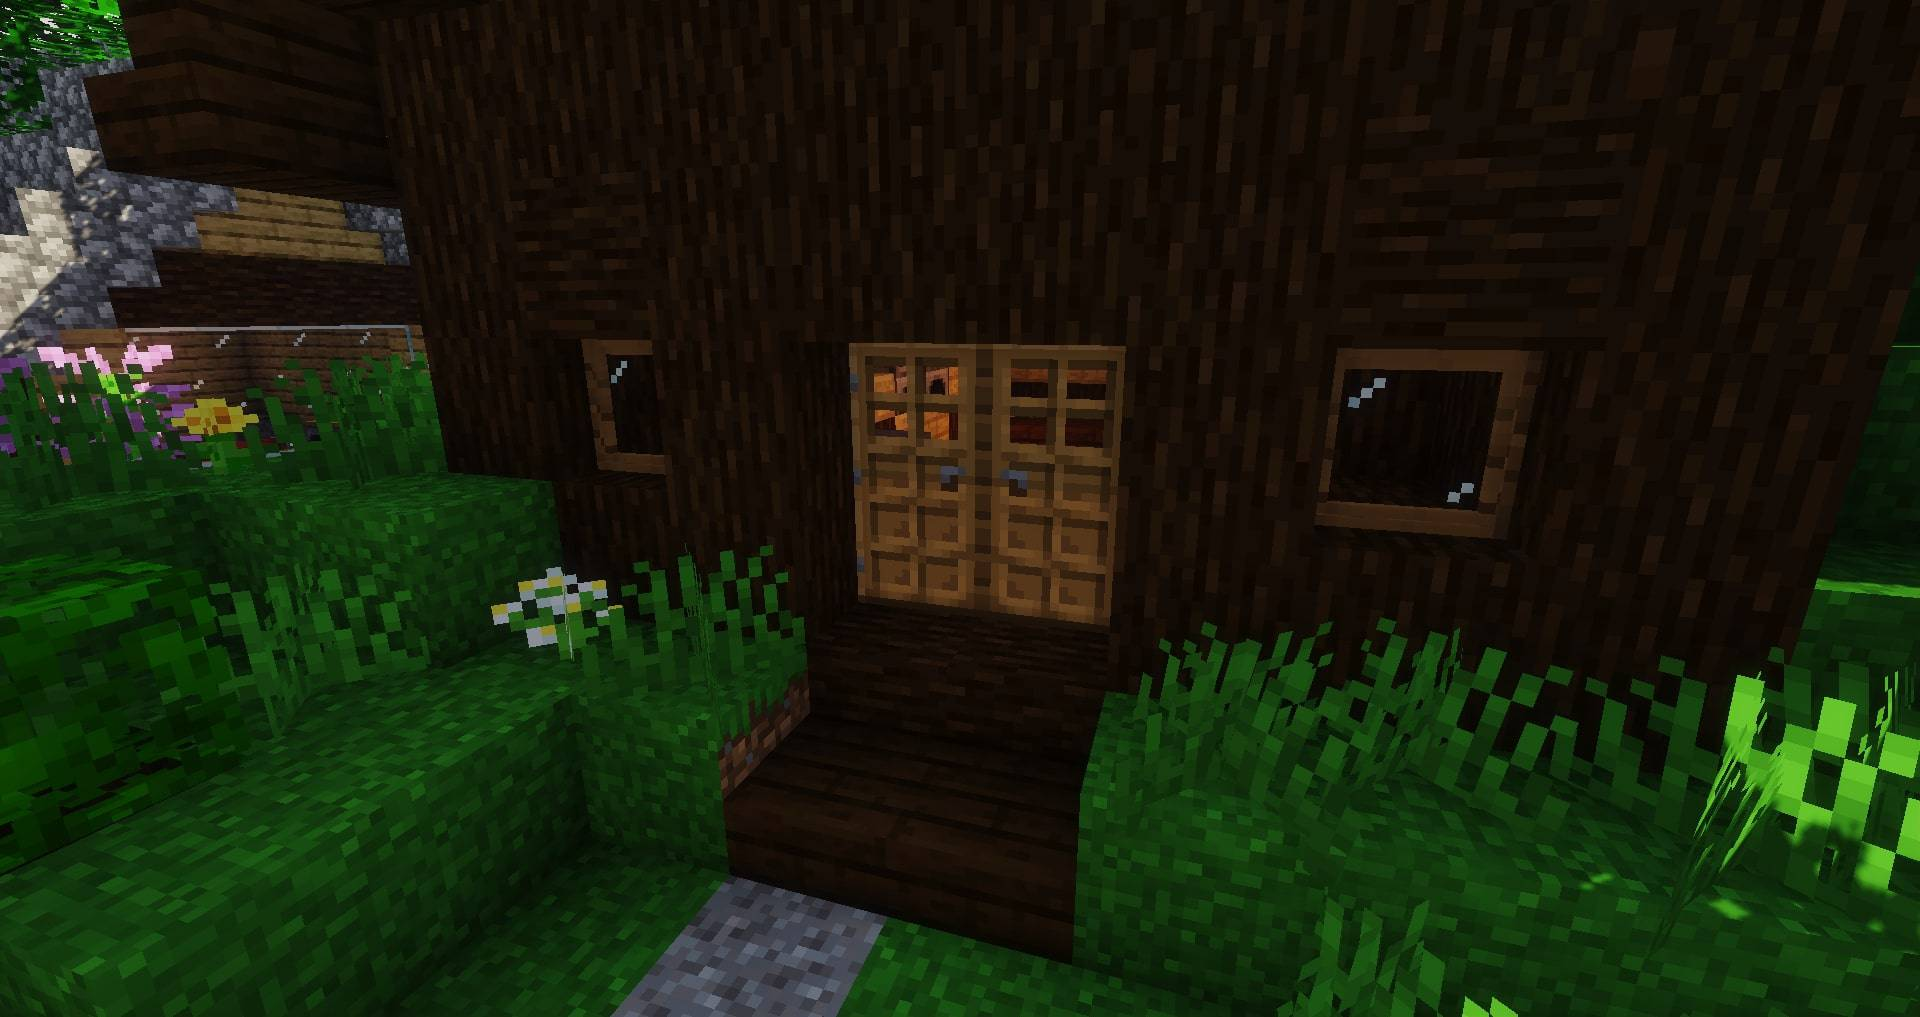 Macaw_s Windows mod for minecraft 29